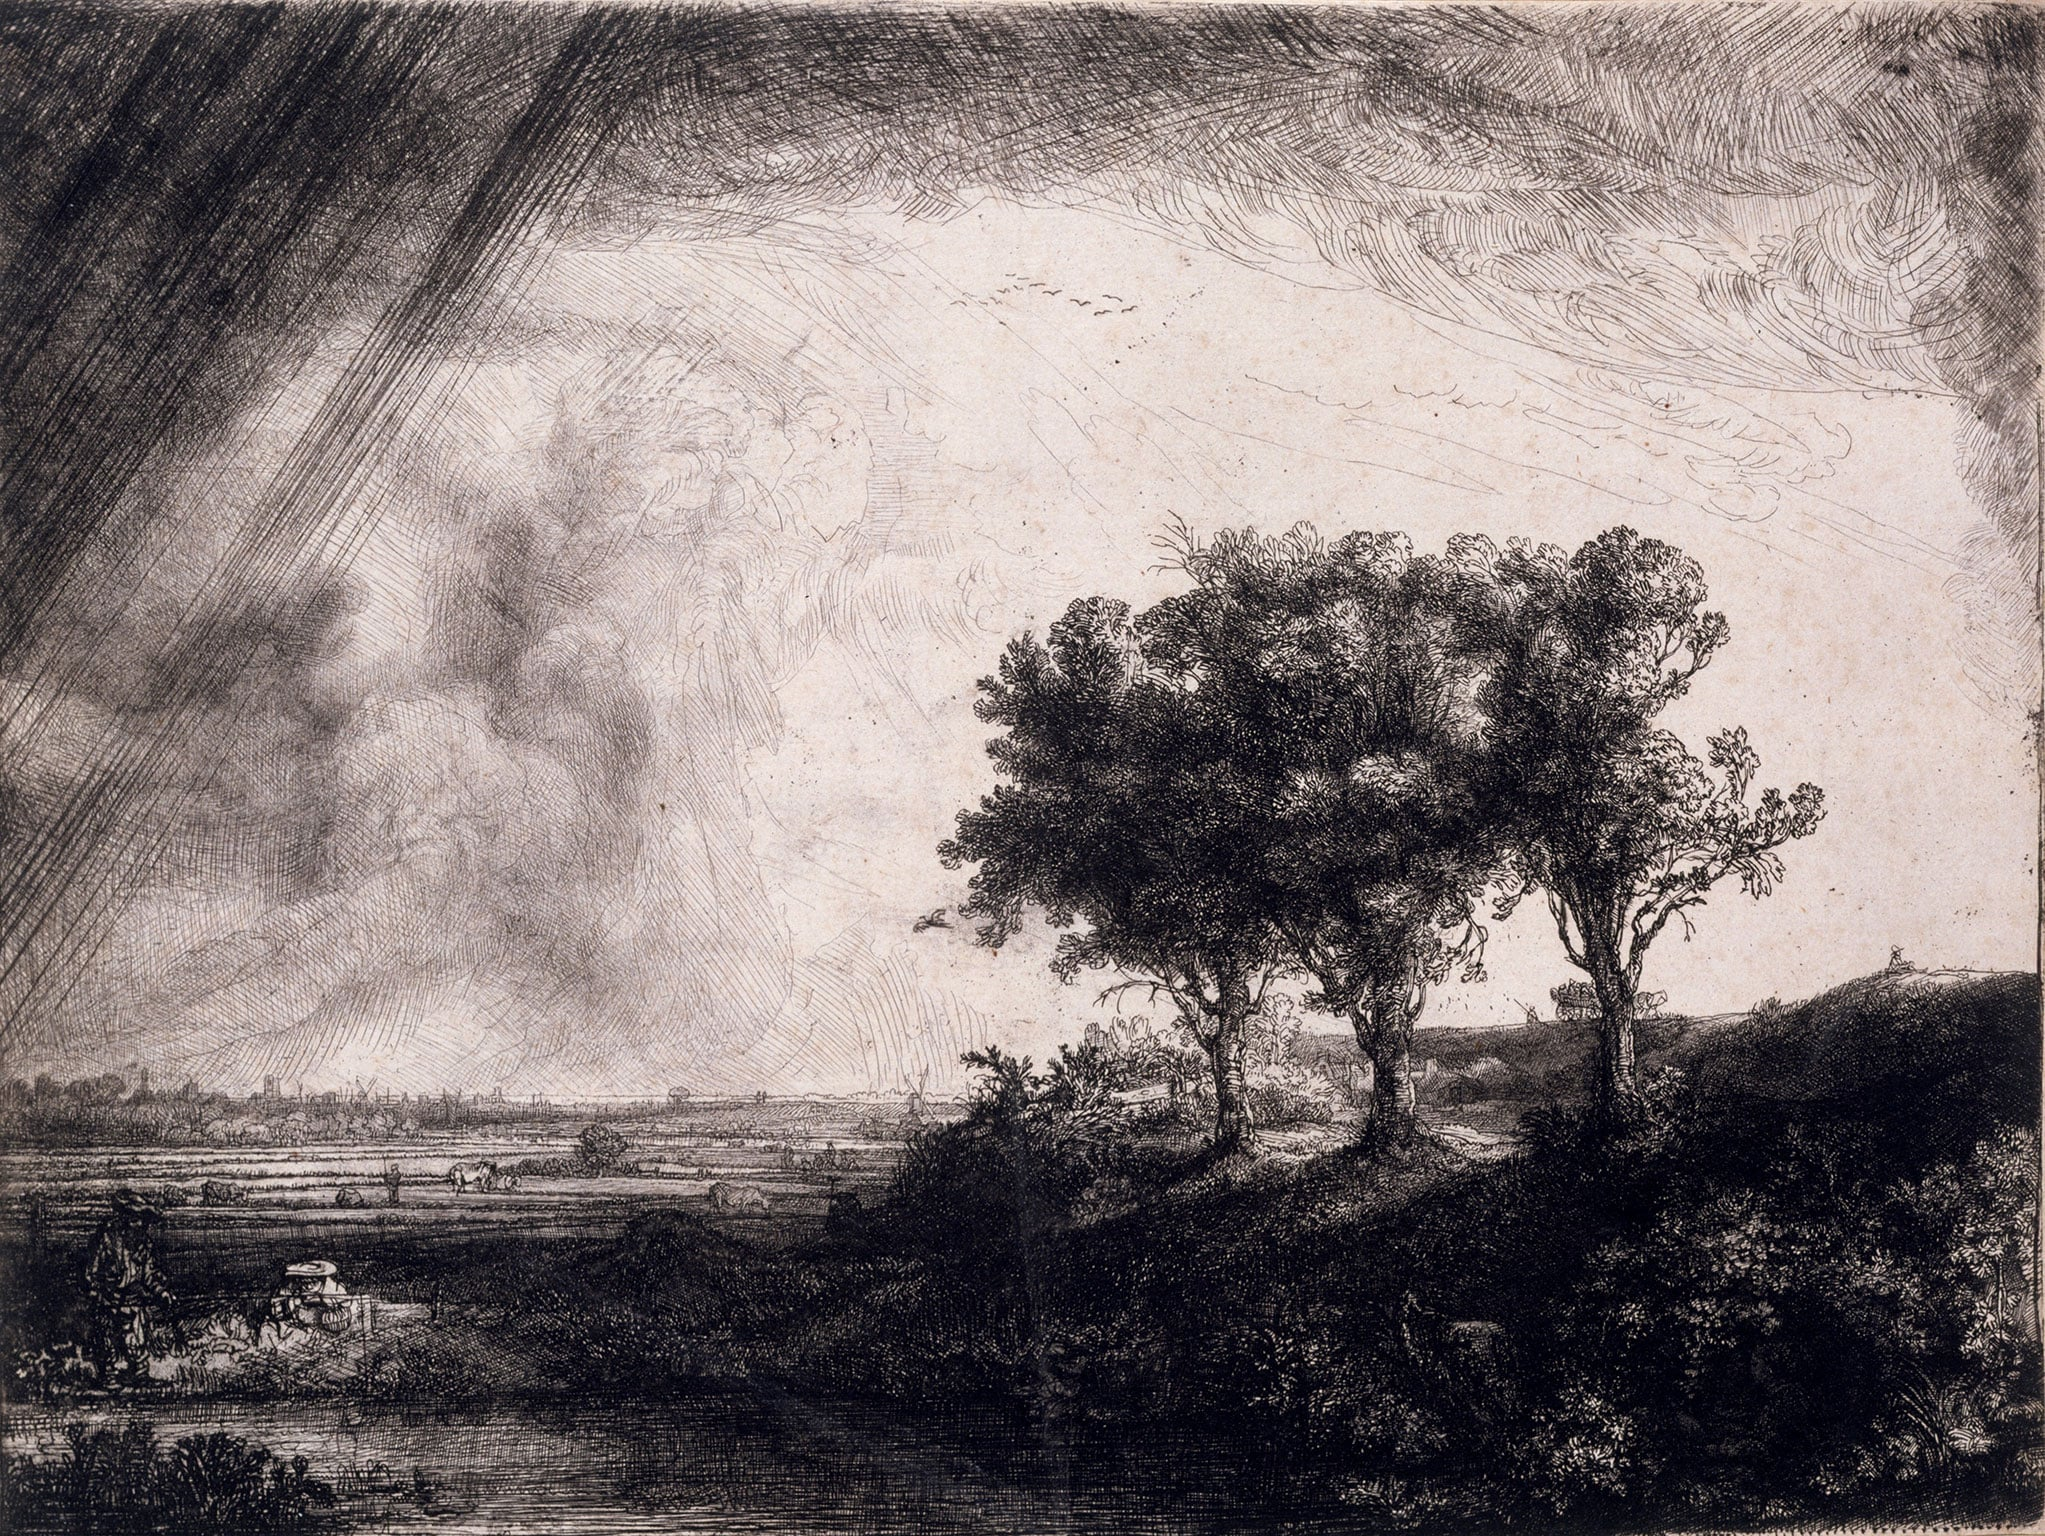 Rembrandt, The Three Trees, 1643